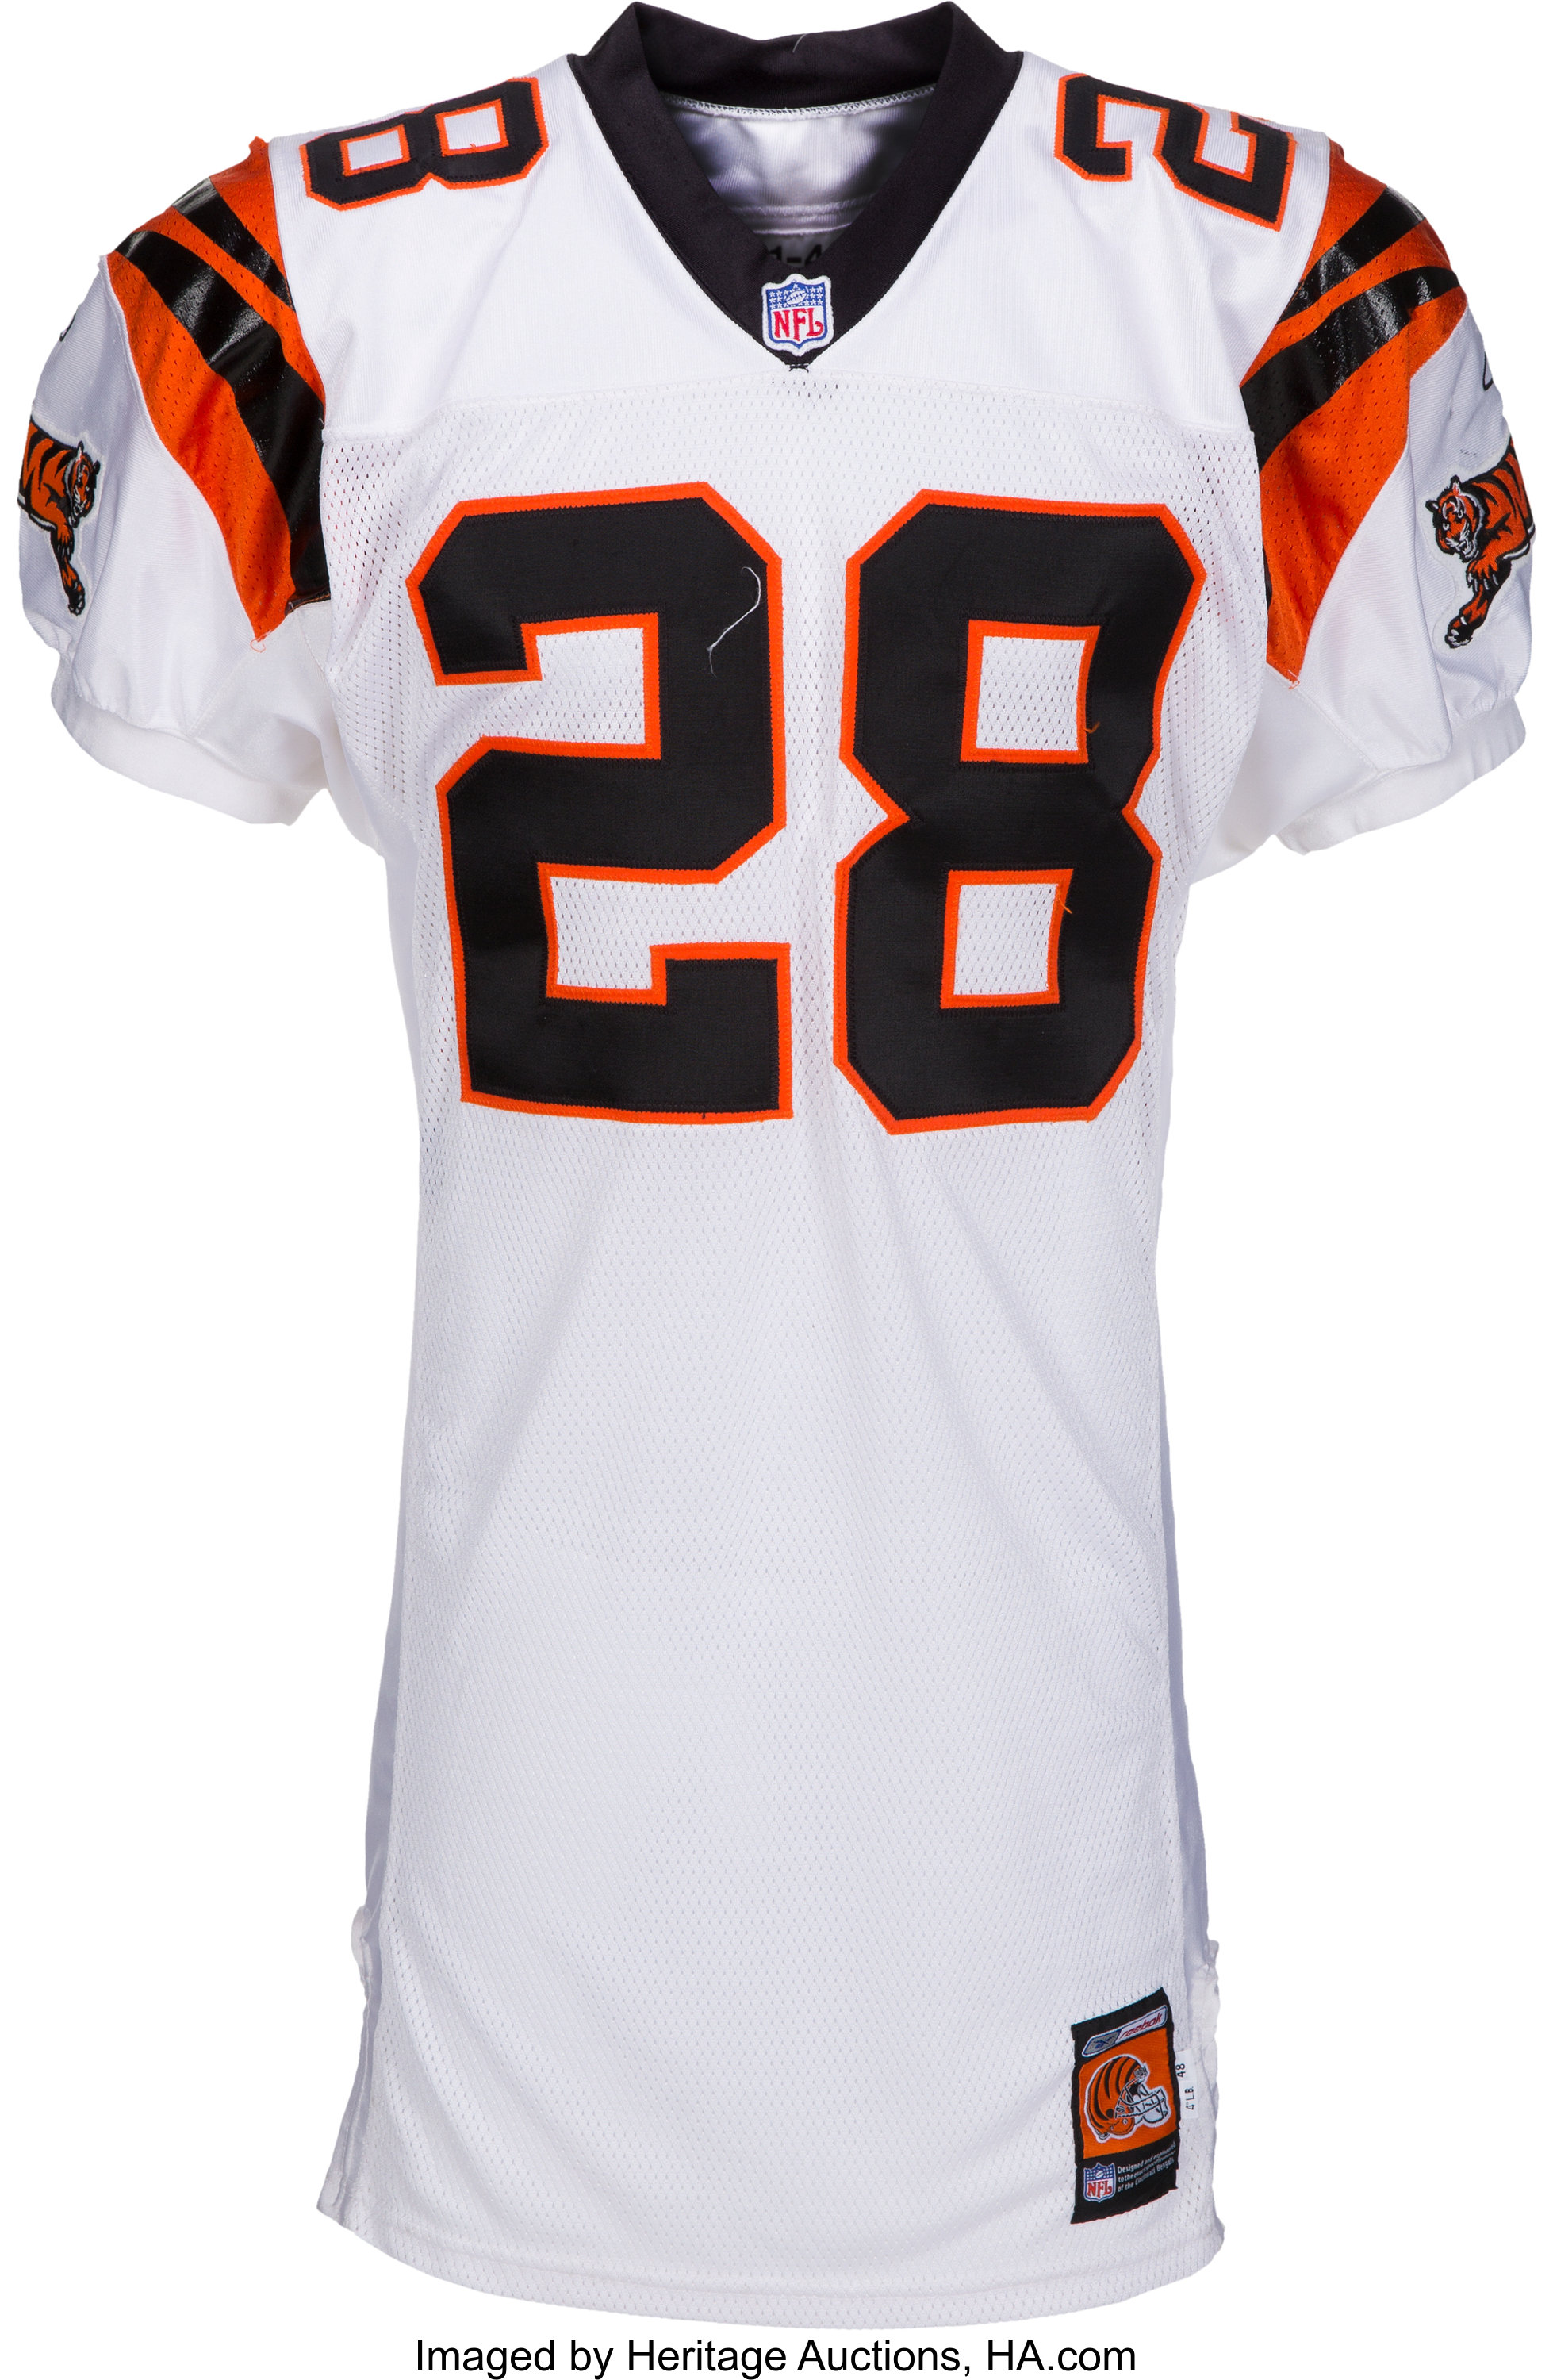 2001 Corey Dillon Game Worn Cincinnati Bengals Jersey and Pants